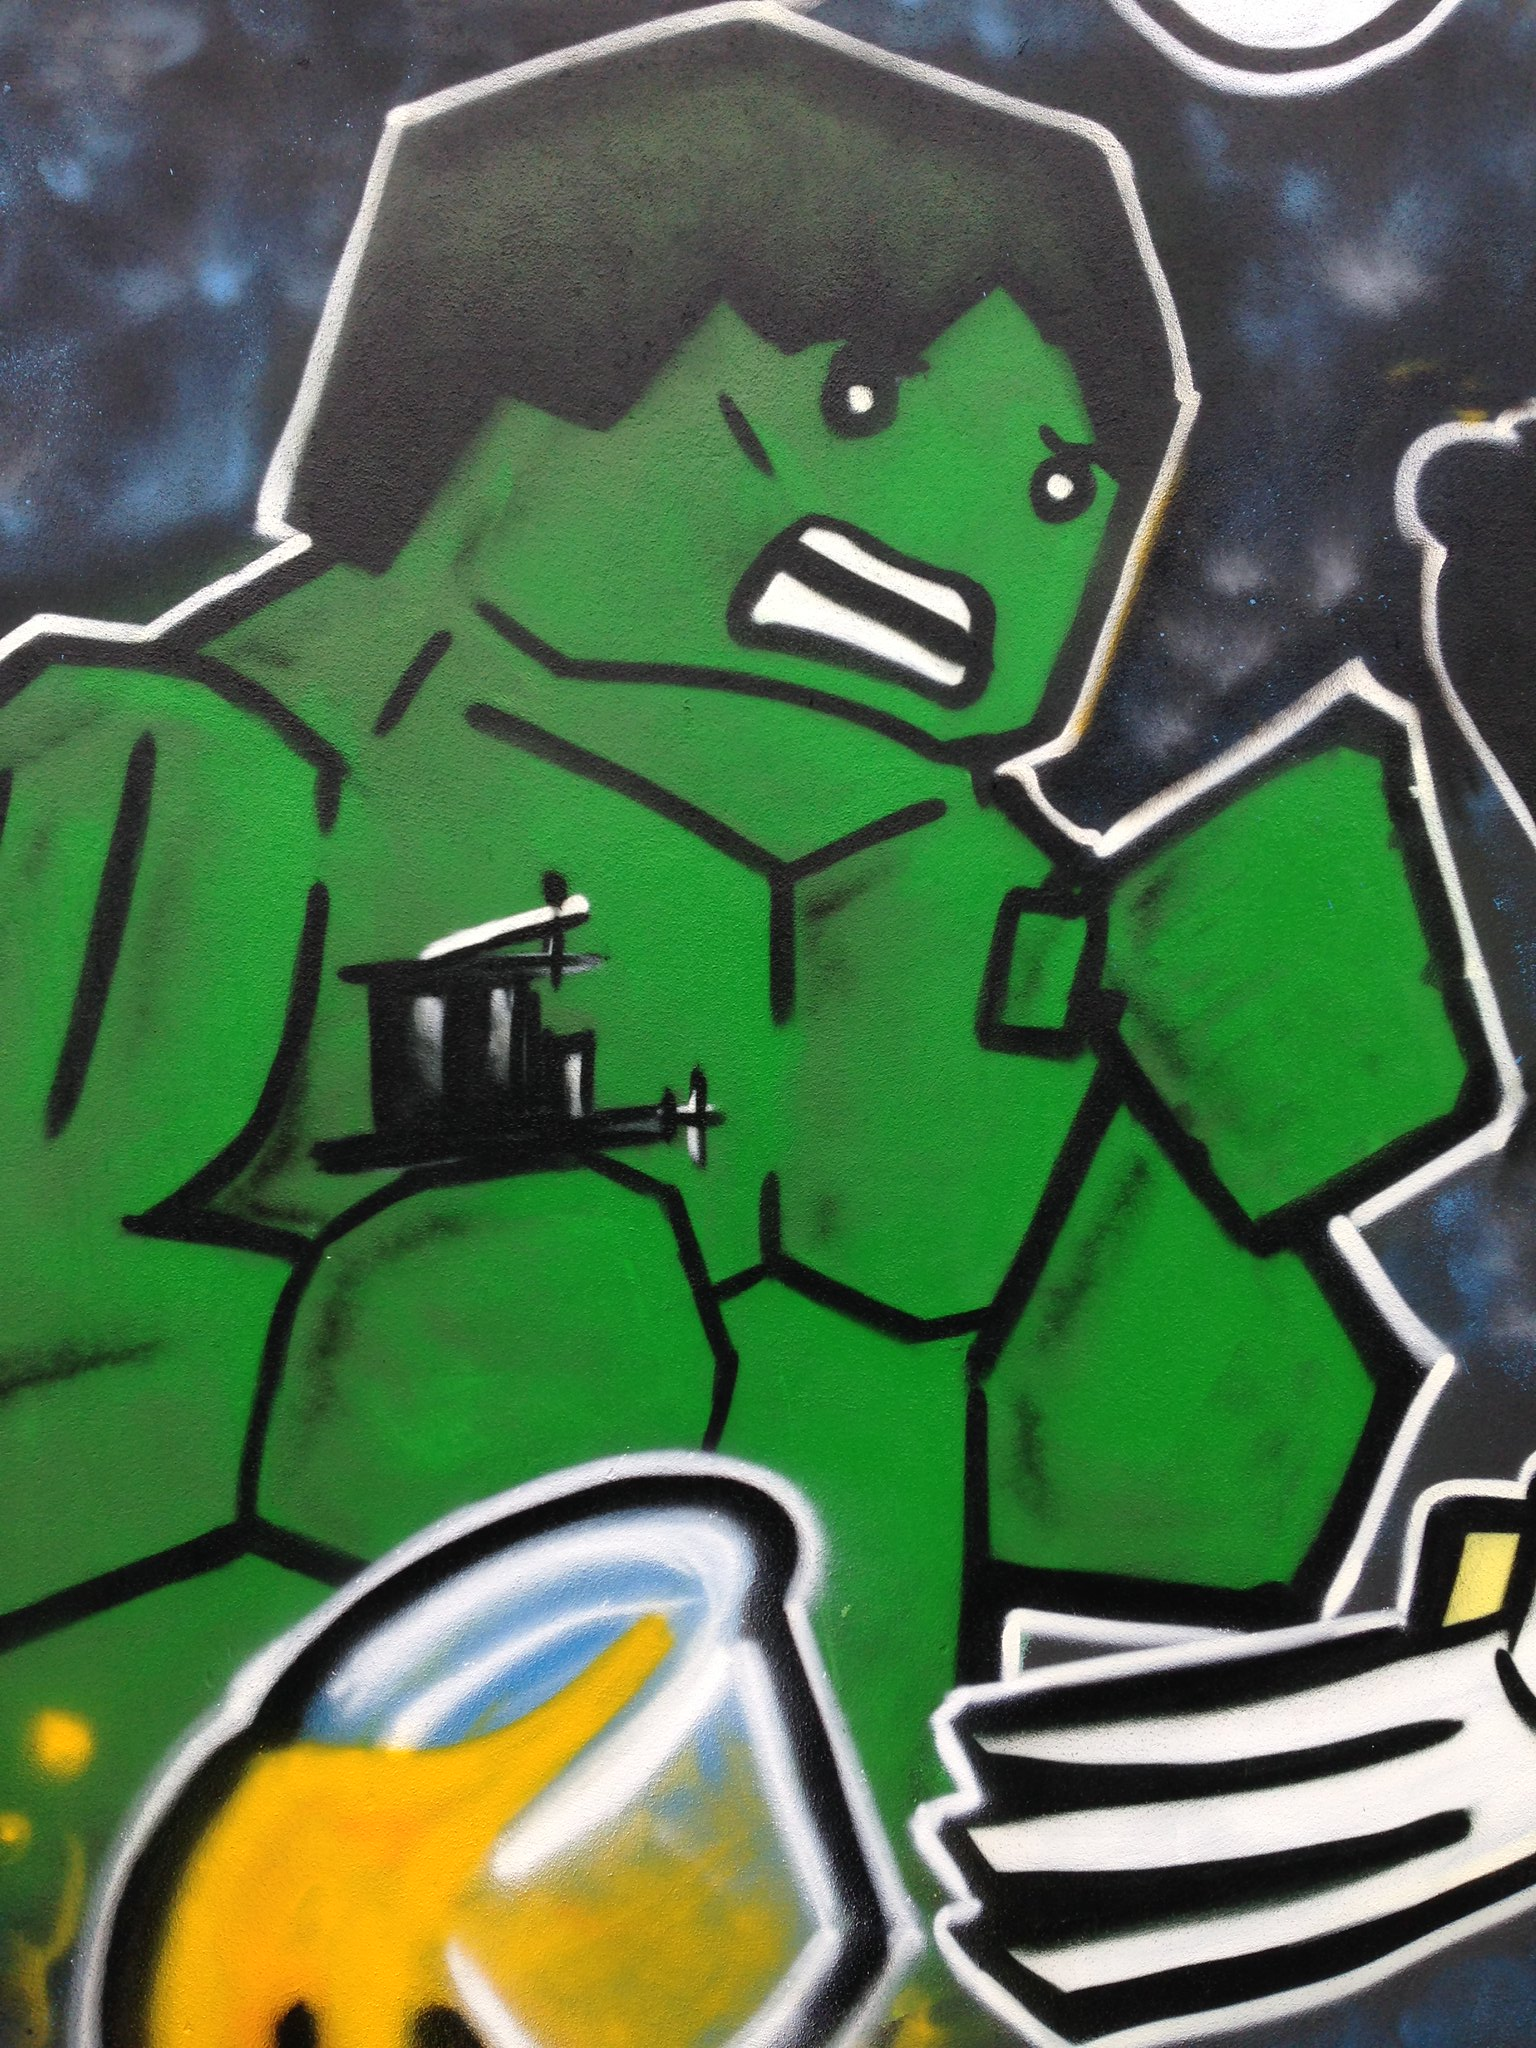 Marvel Lego Incredible Hulk street art, Blackpool, by Dominic Carlyle